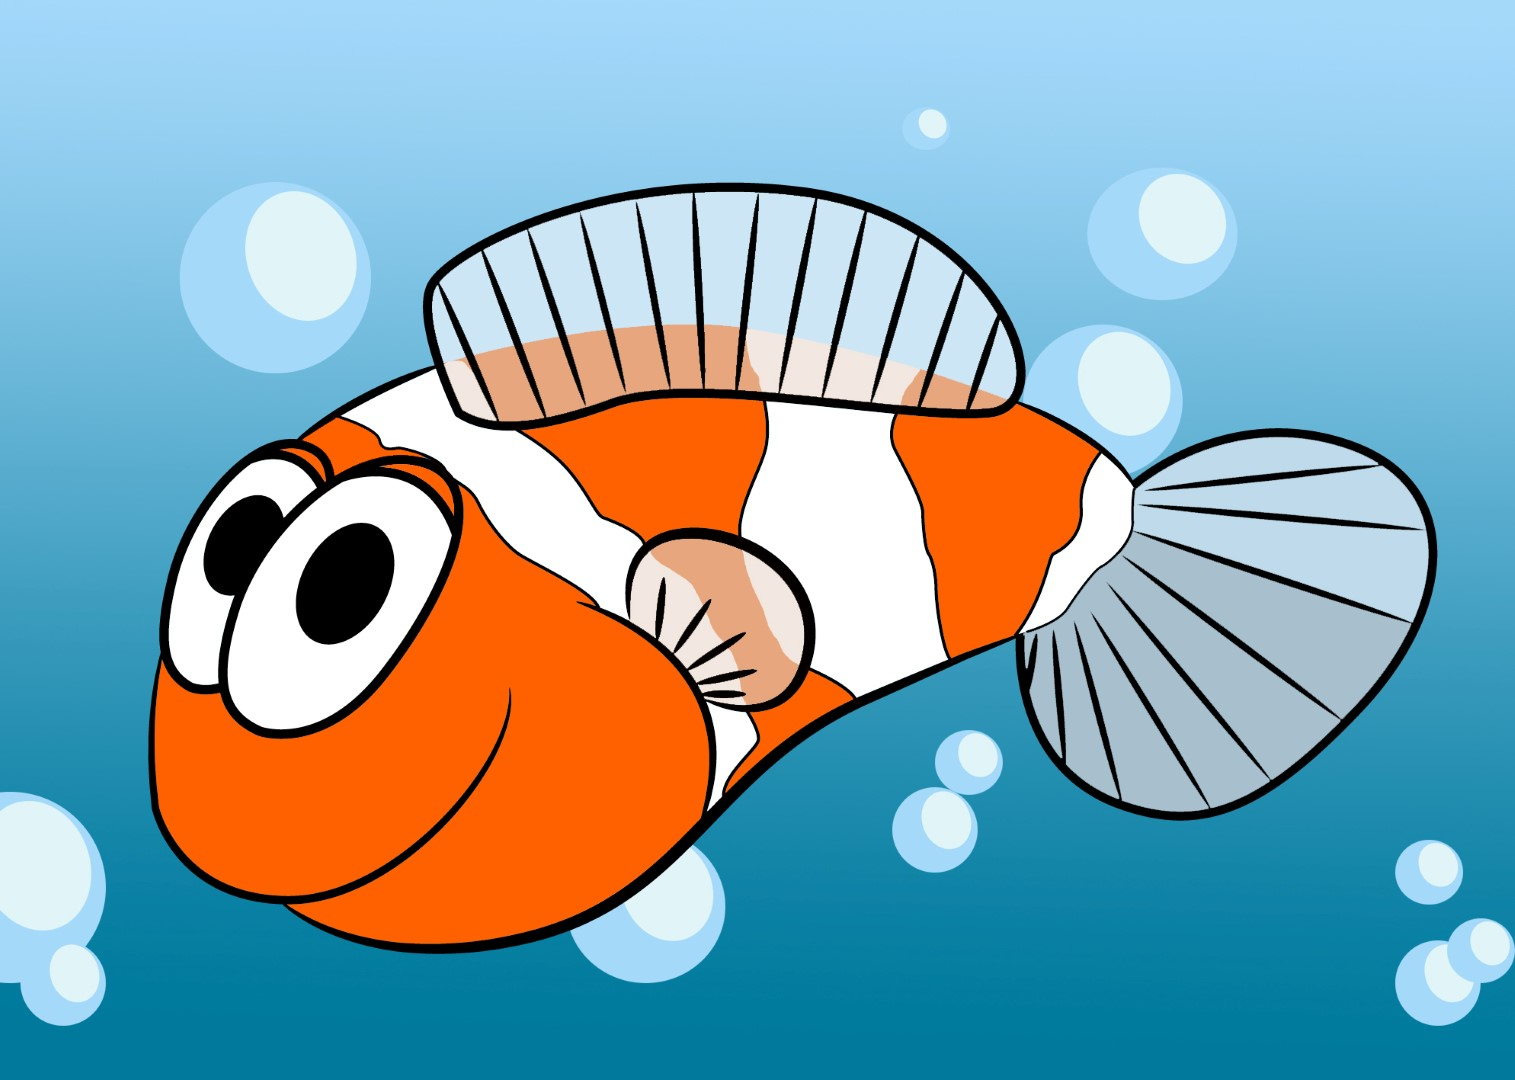 cartoon clown fish